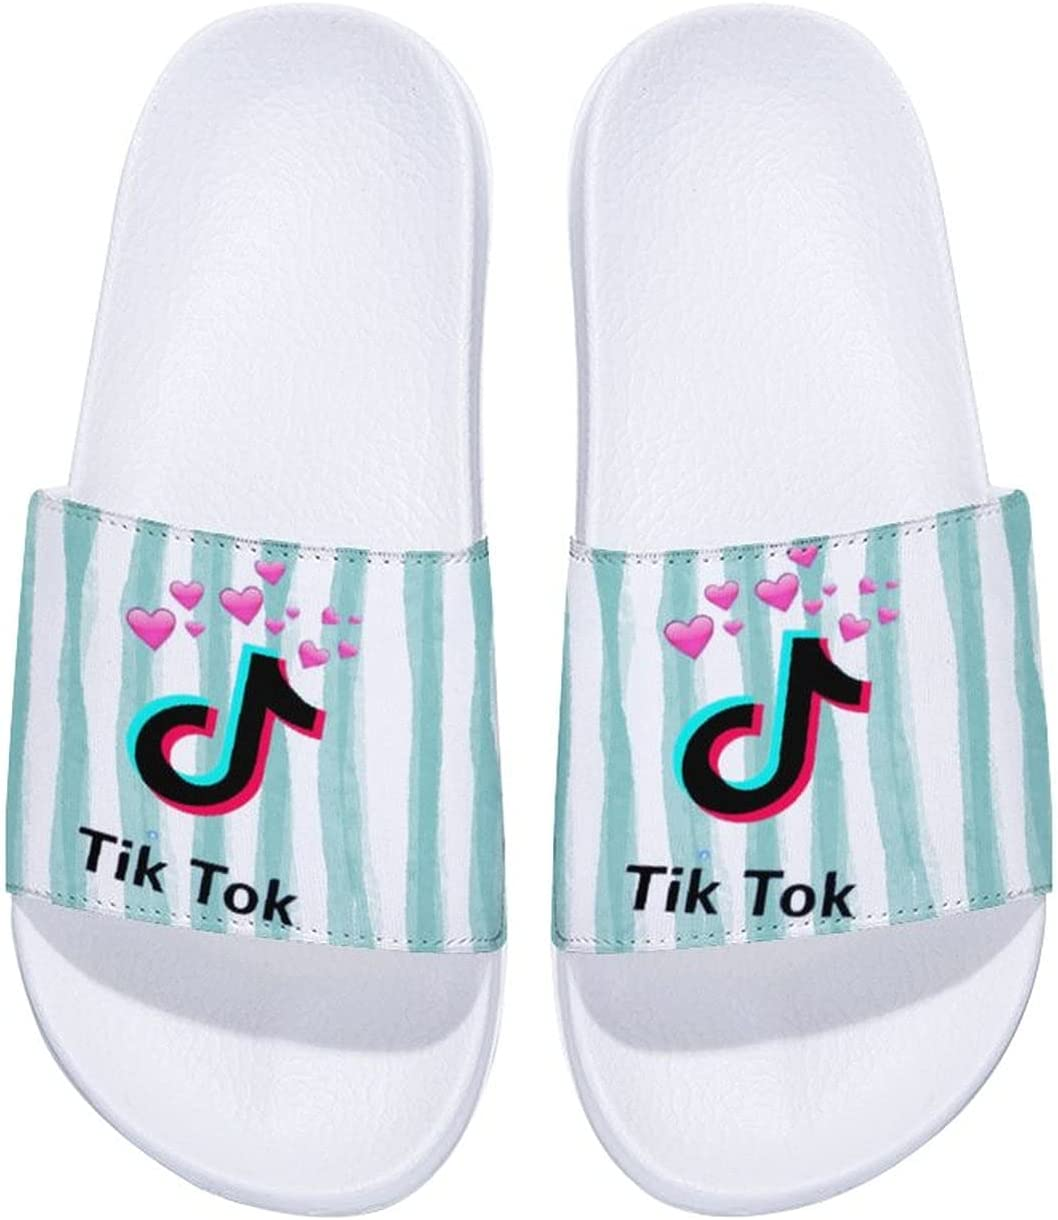 T-ik Tok Kids Household Sandals Anti-Slip Comfortable Indoor Outdoor Slippers for Girls and Boys,Summer Beach Water Shoes 12